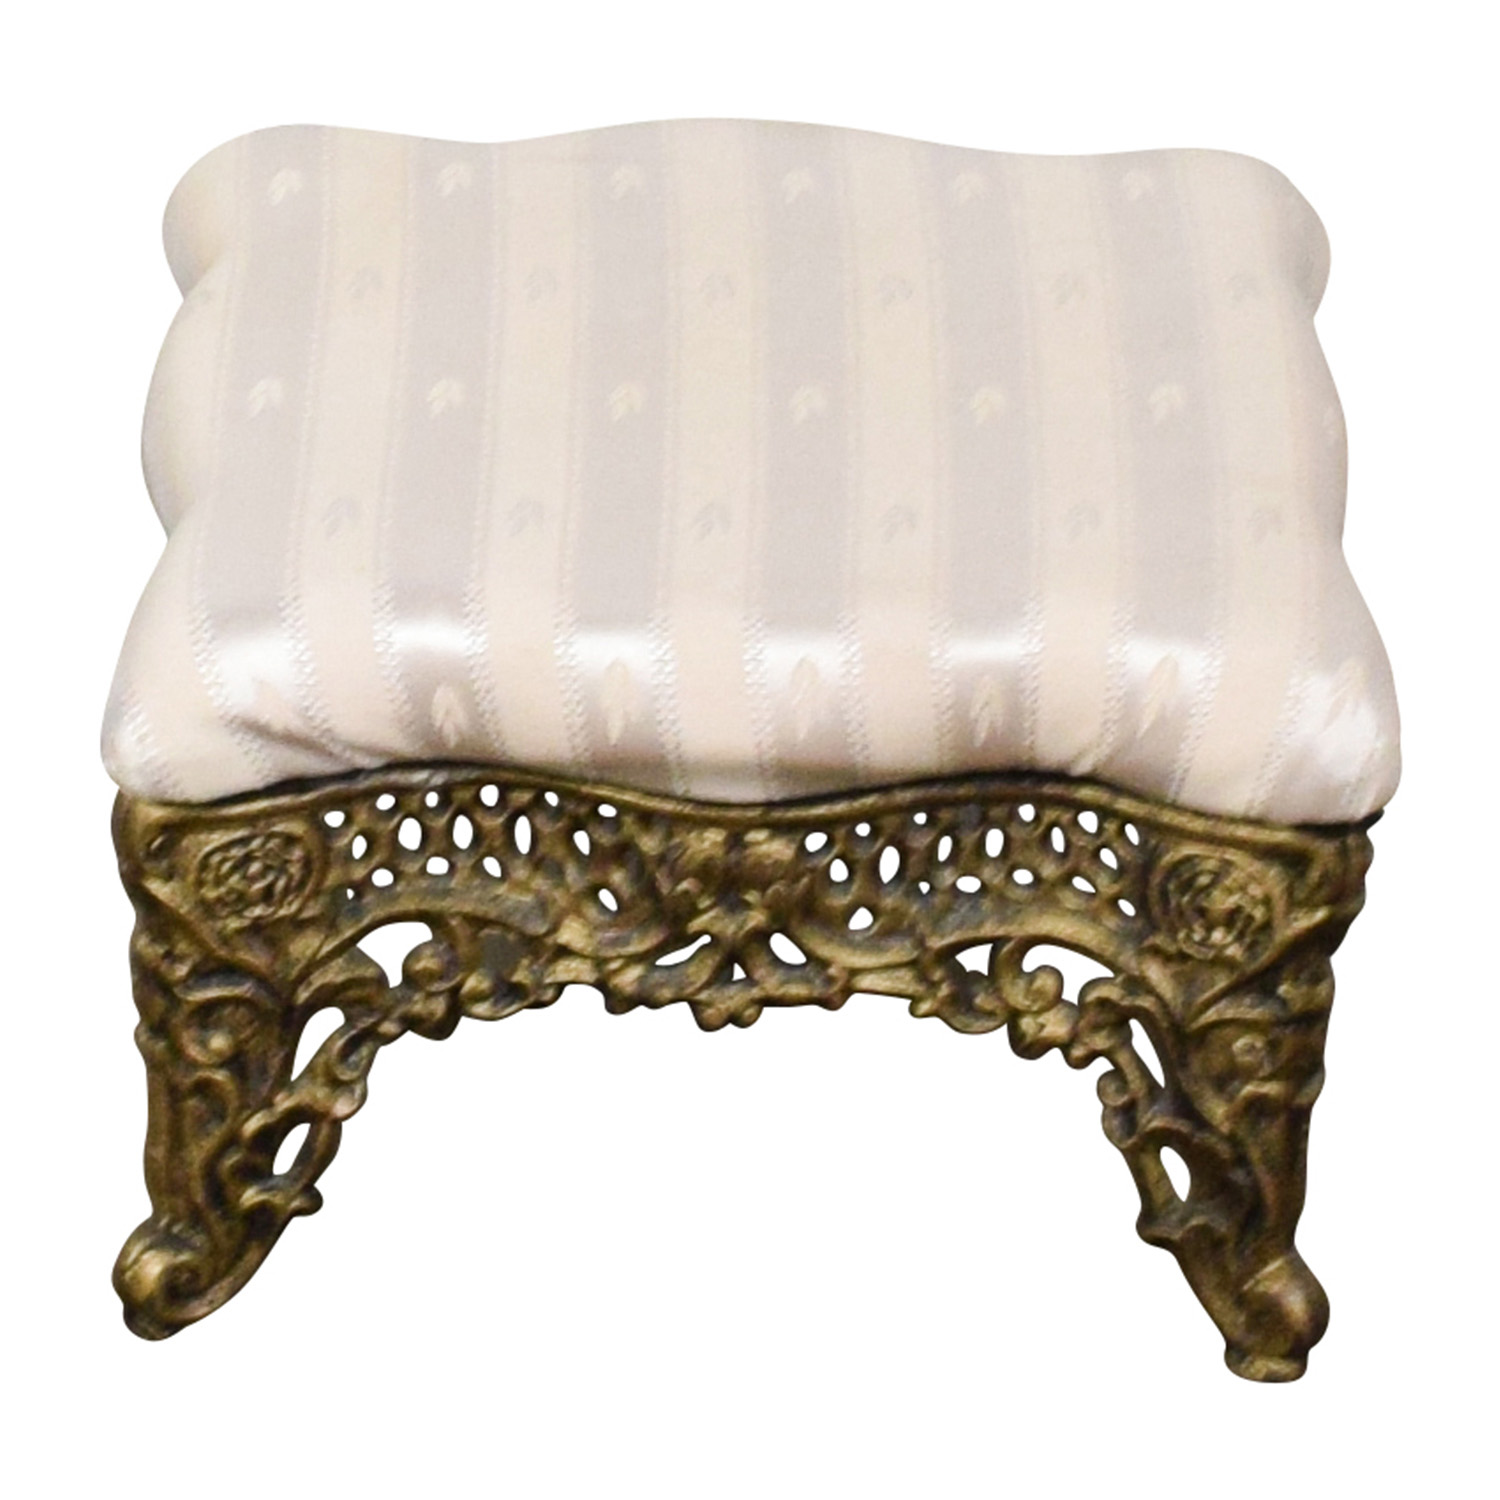 Horchow Horchow Beige Foot Stool with Gold Finish for sale